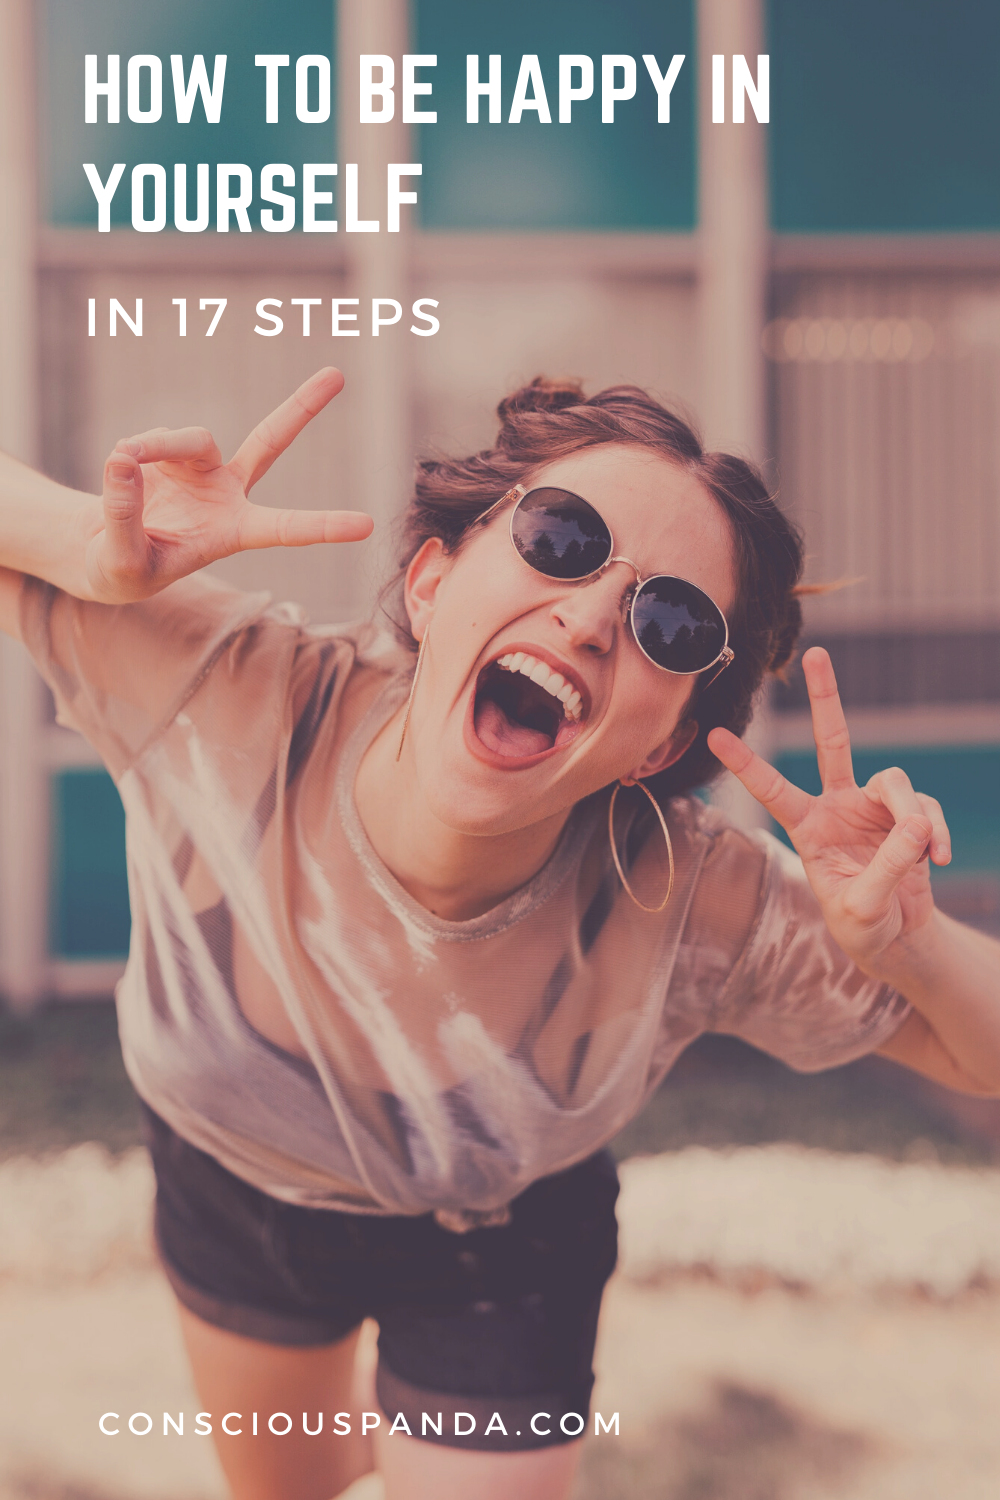 How to be happy in yourself in 17 steps